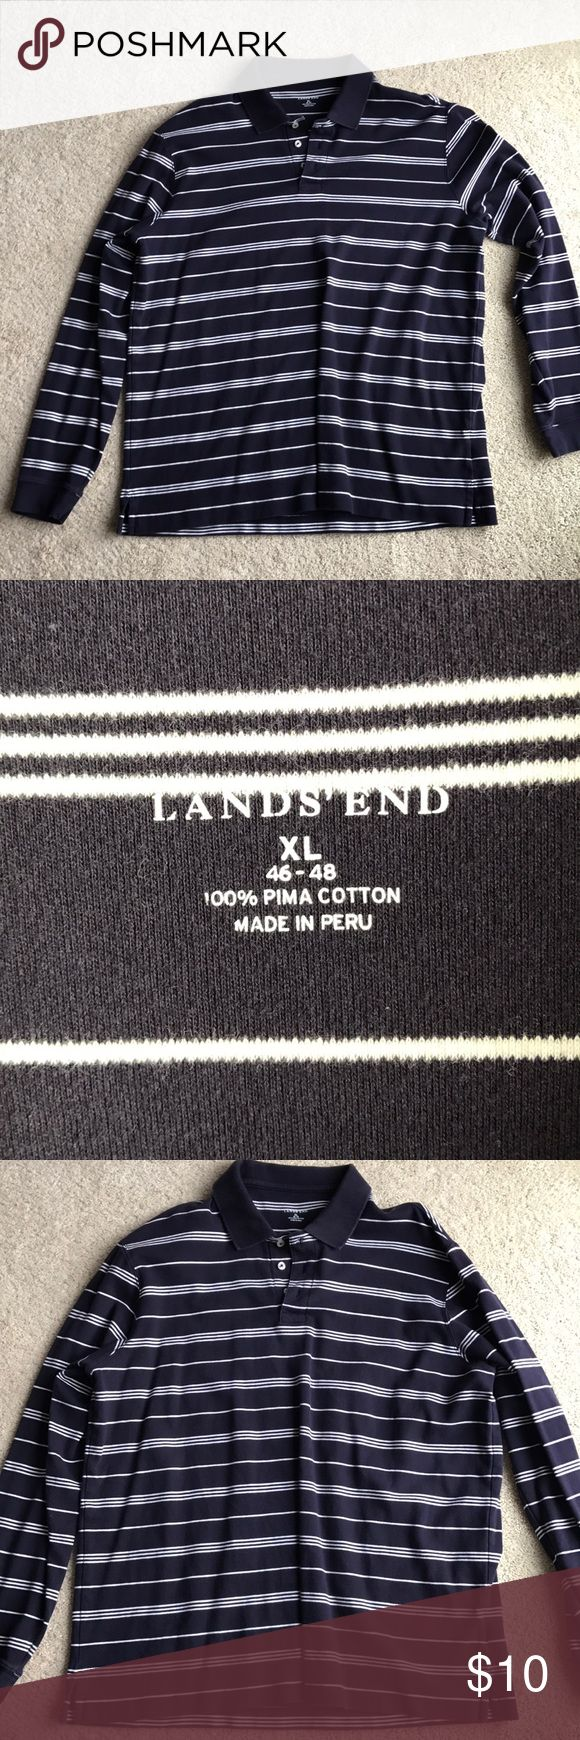 Mens long sleeve polo shirt XL long sleeve polo shirt Lands end XL  navy and white stripe  great condition Lands' End Shirts Polos